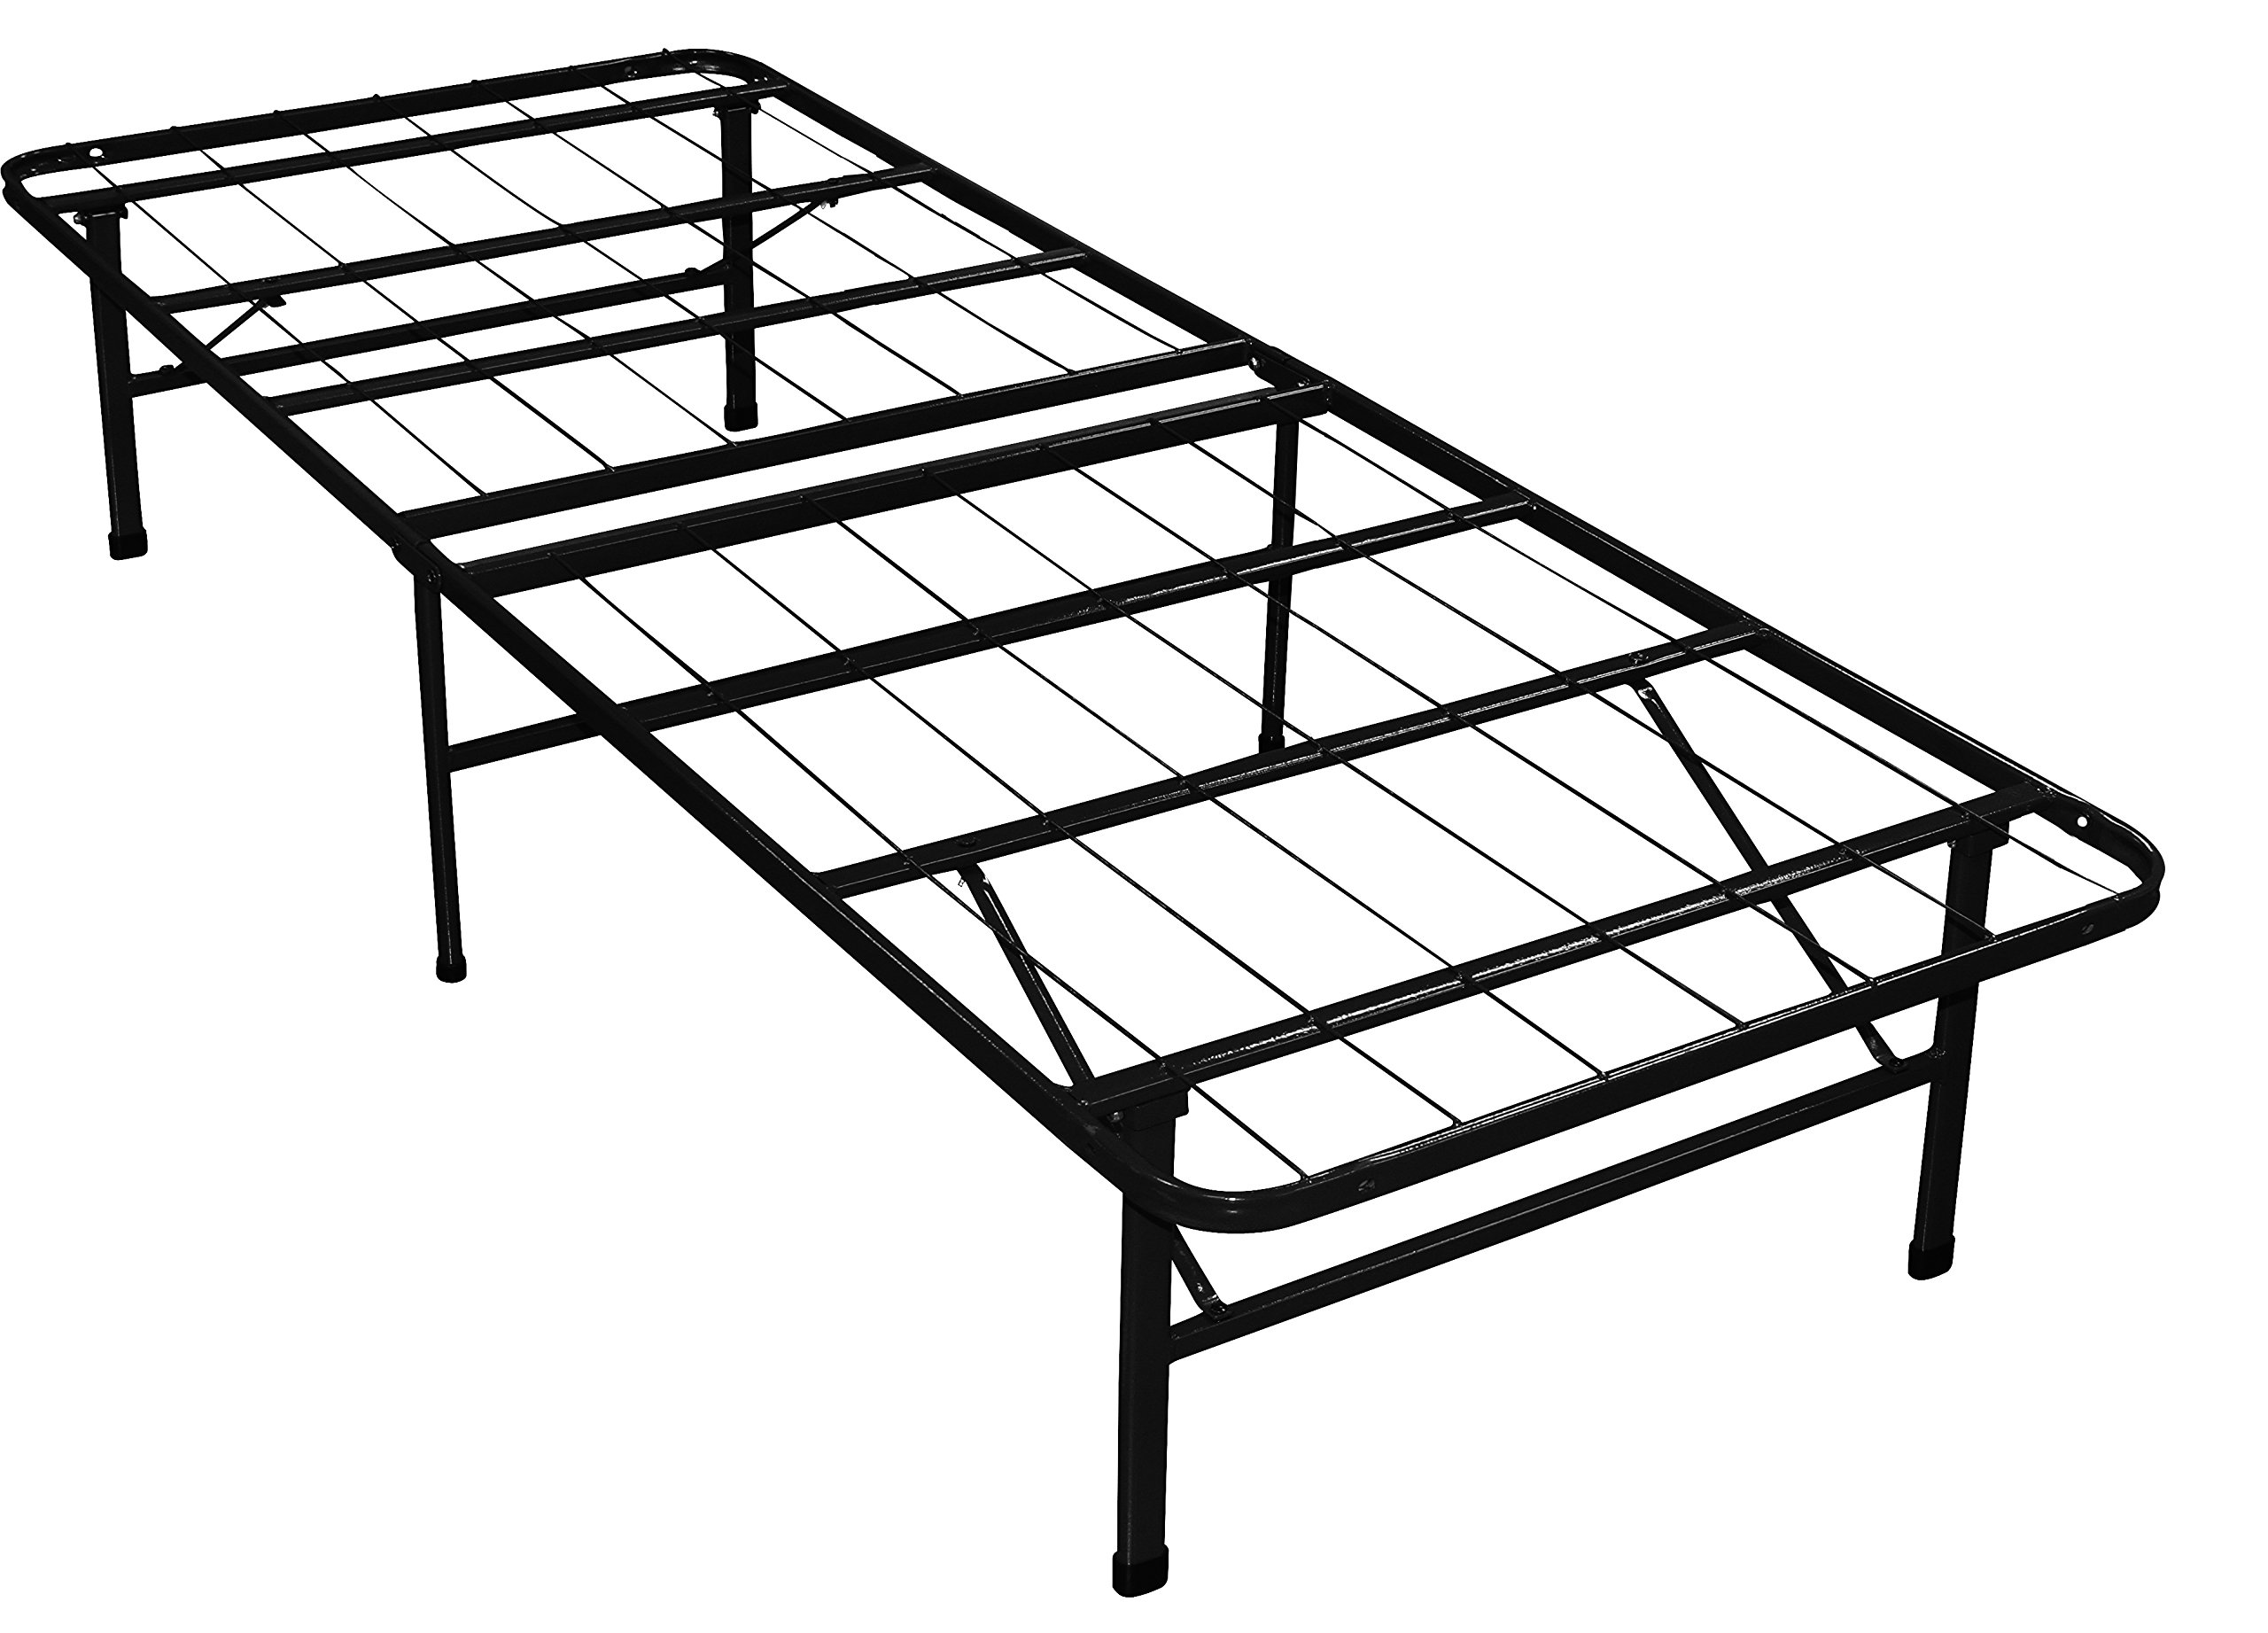 best price mattress new innovated box spring platform. Black Bedroom Furniture Sets. Home Design Ideas